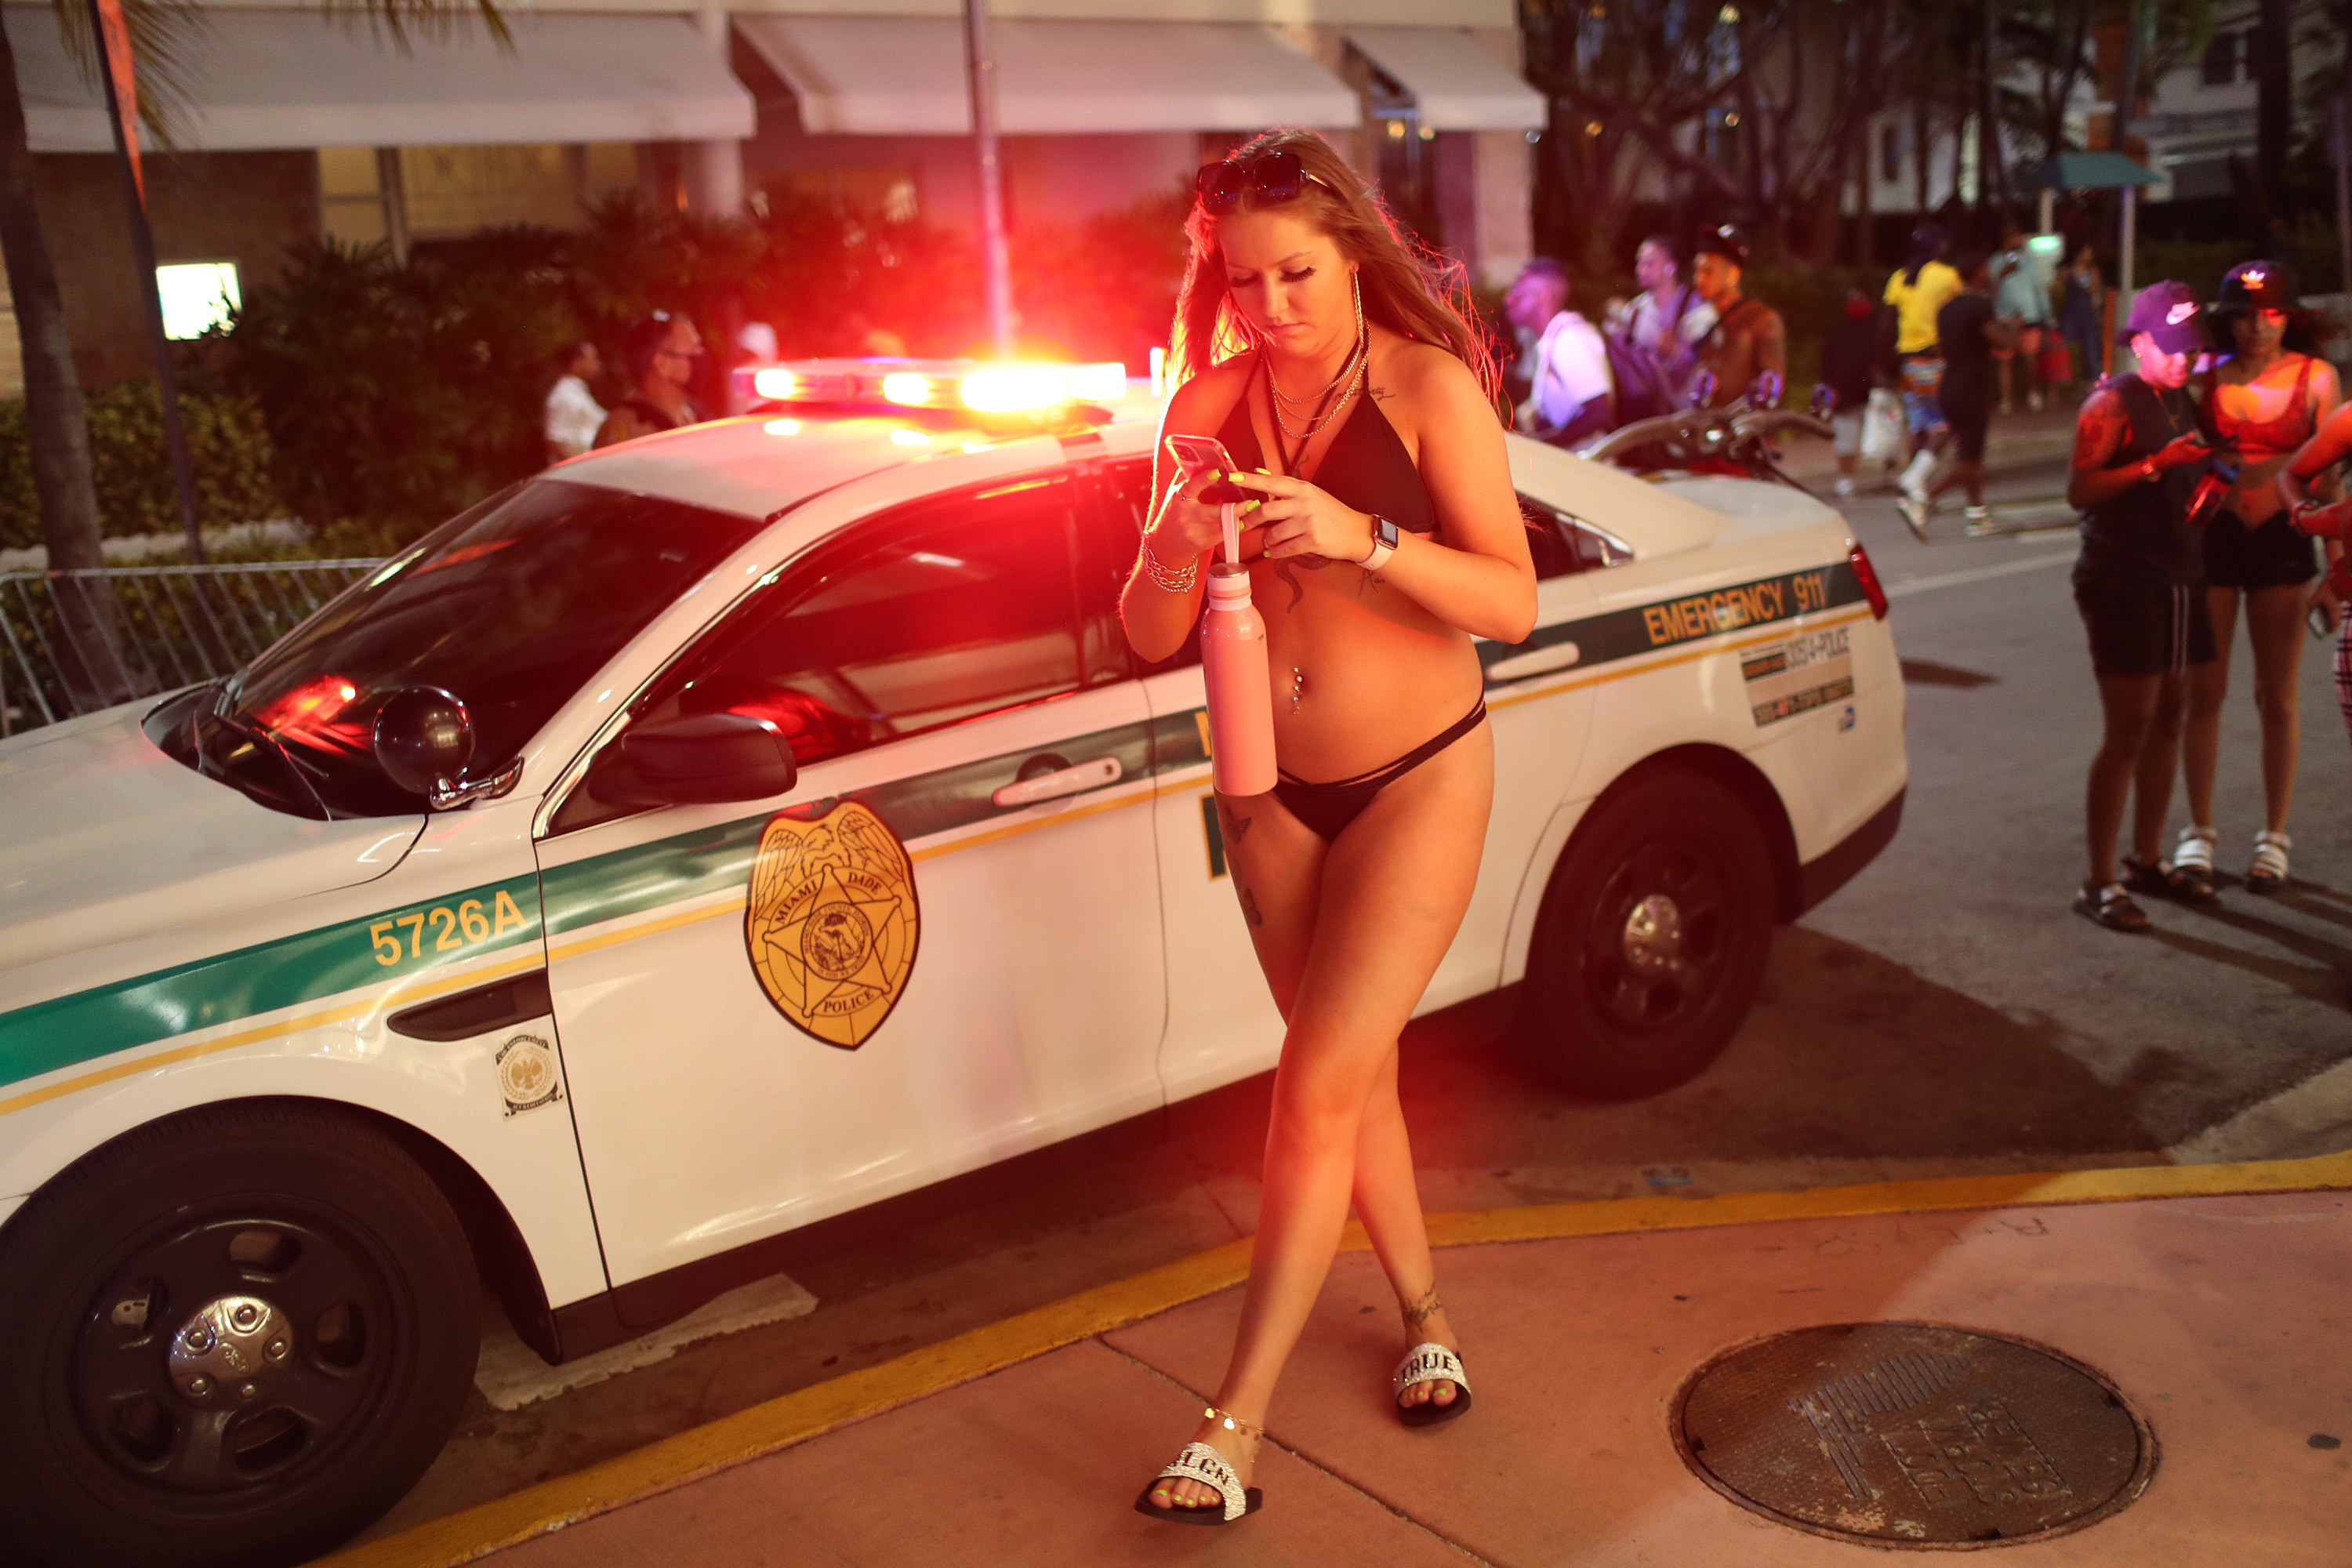 A woman in a bikini on her phone walks past a cop car